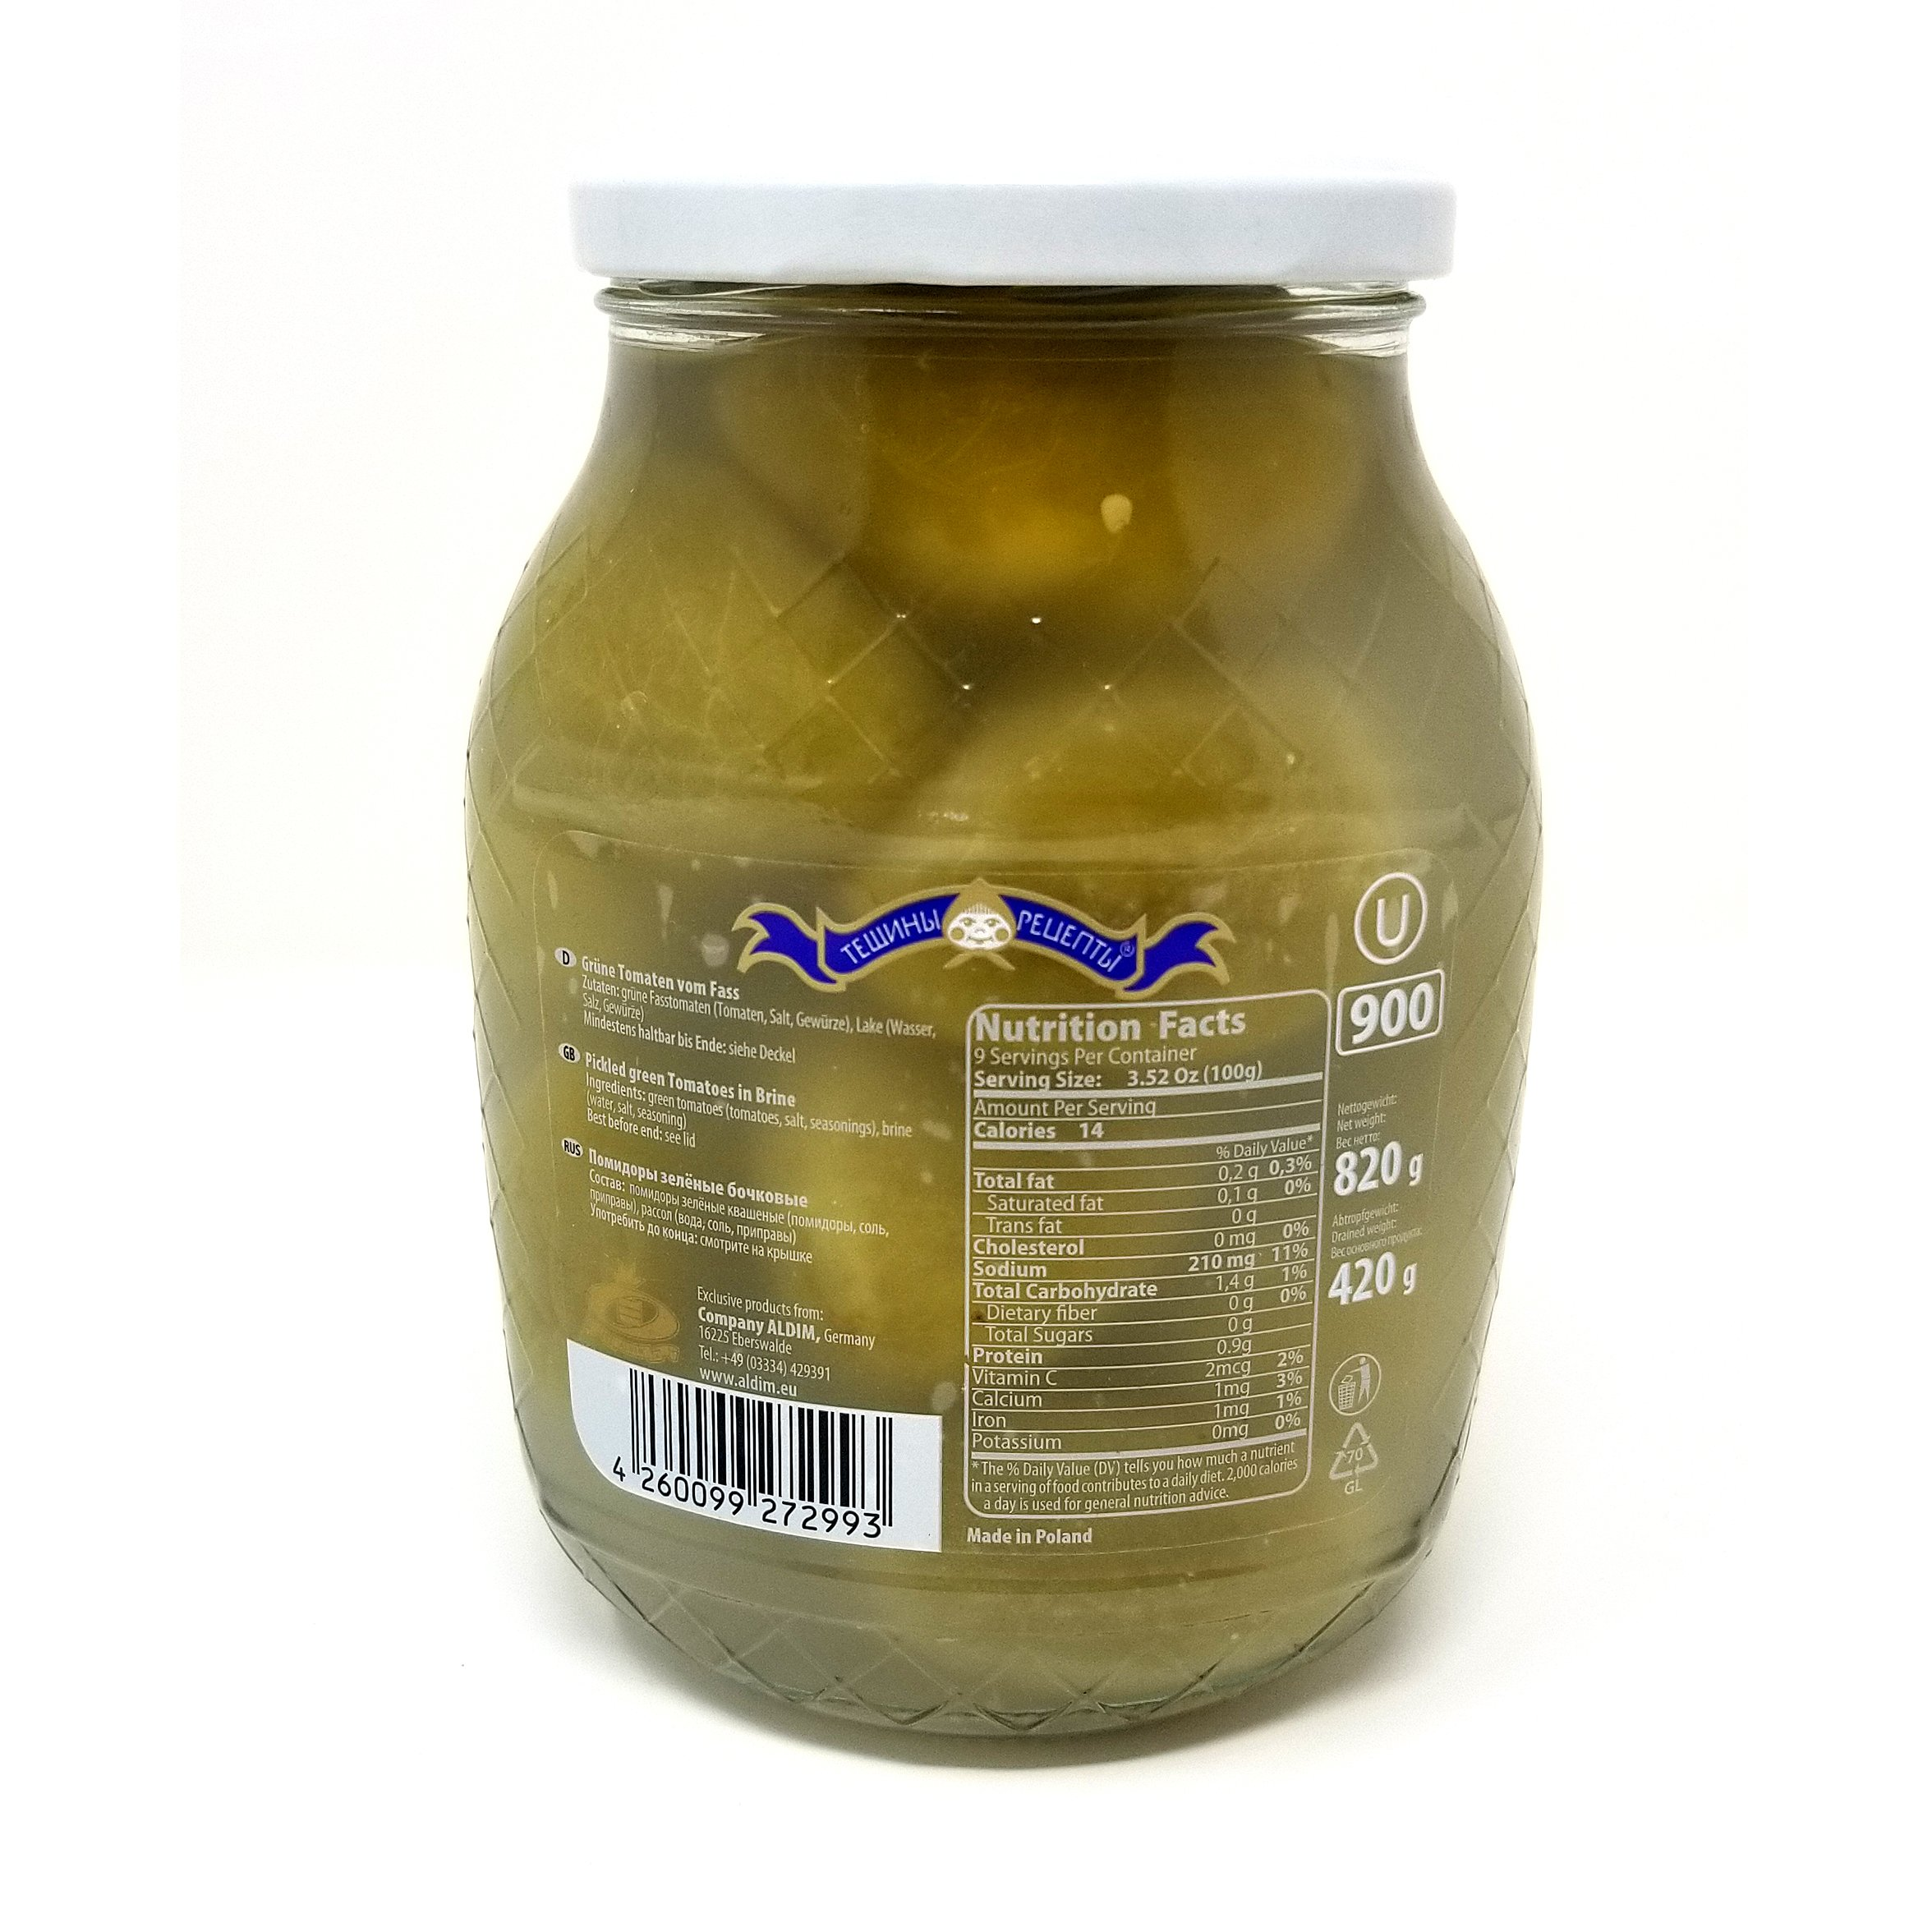 Barrel Pickled Green Tomatoes in Brine Without Preservatives and Vinegar, 23 oz / 900 g